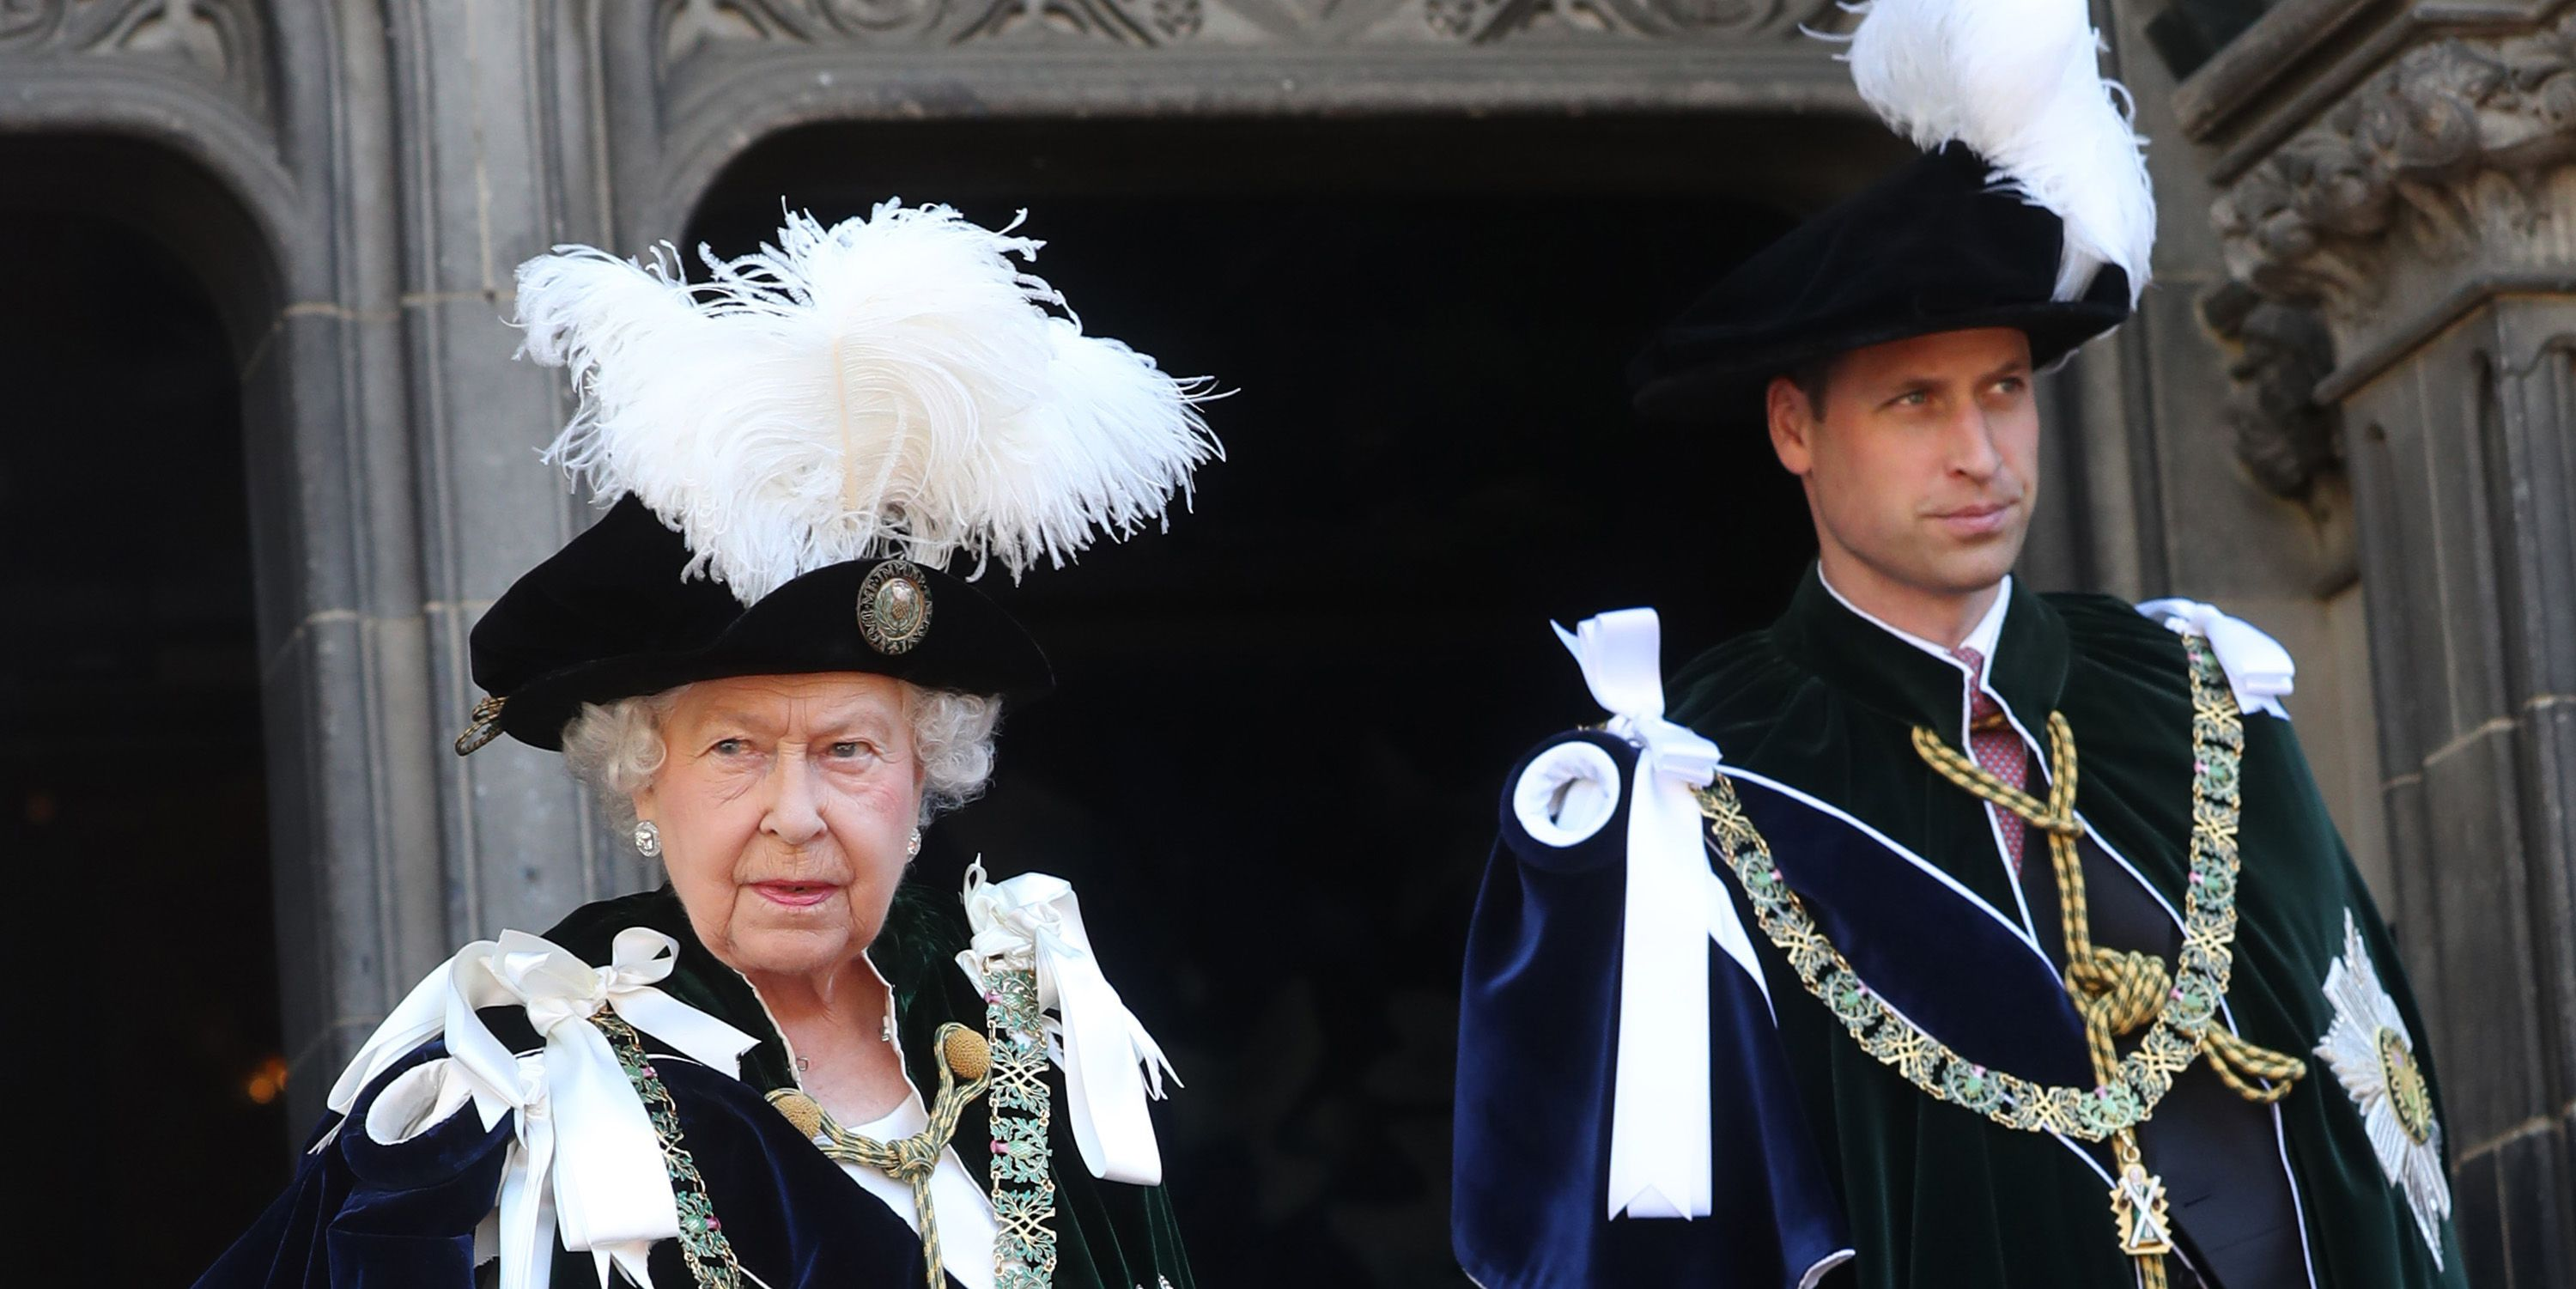 843e56e7d109 Prince William's Order of the Thistle Outfit in Scotland Historical Meaning  Explained